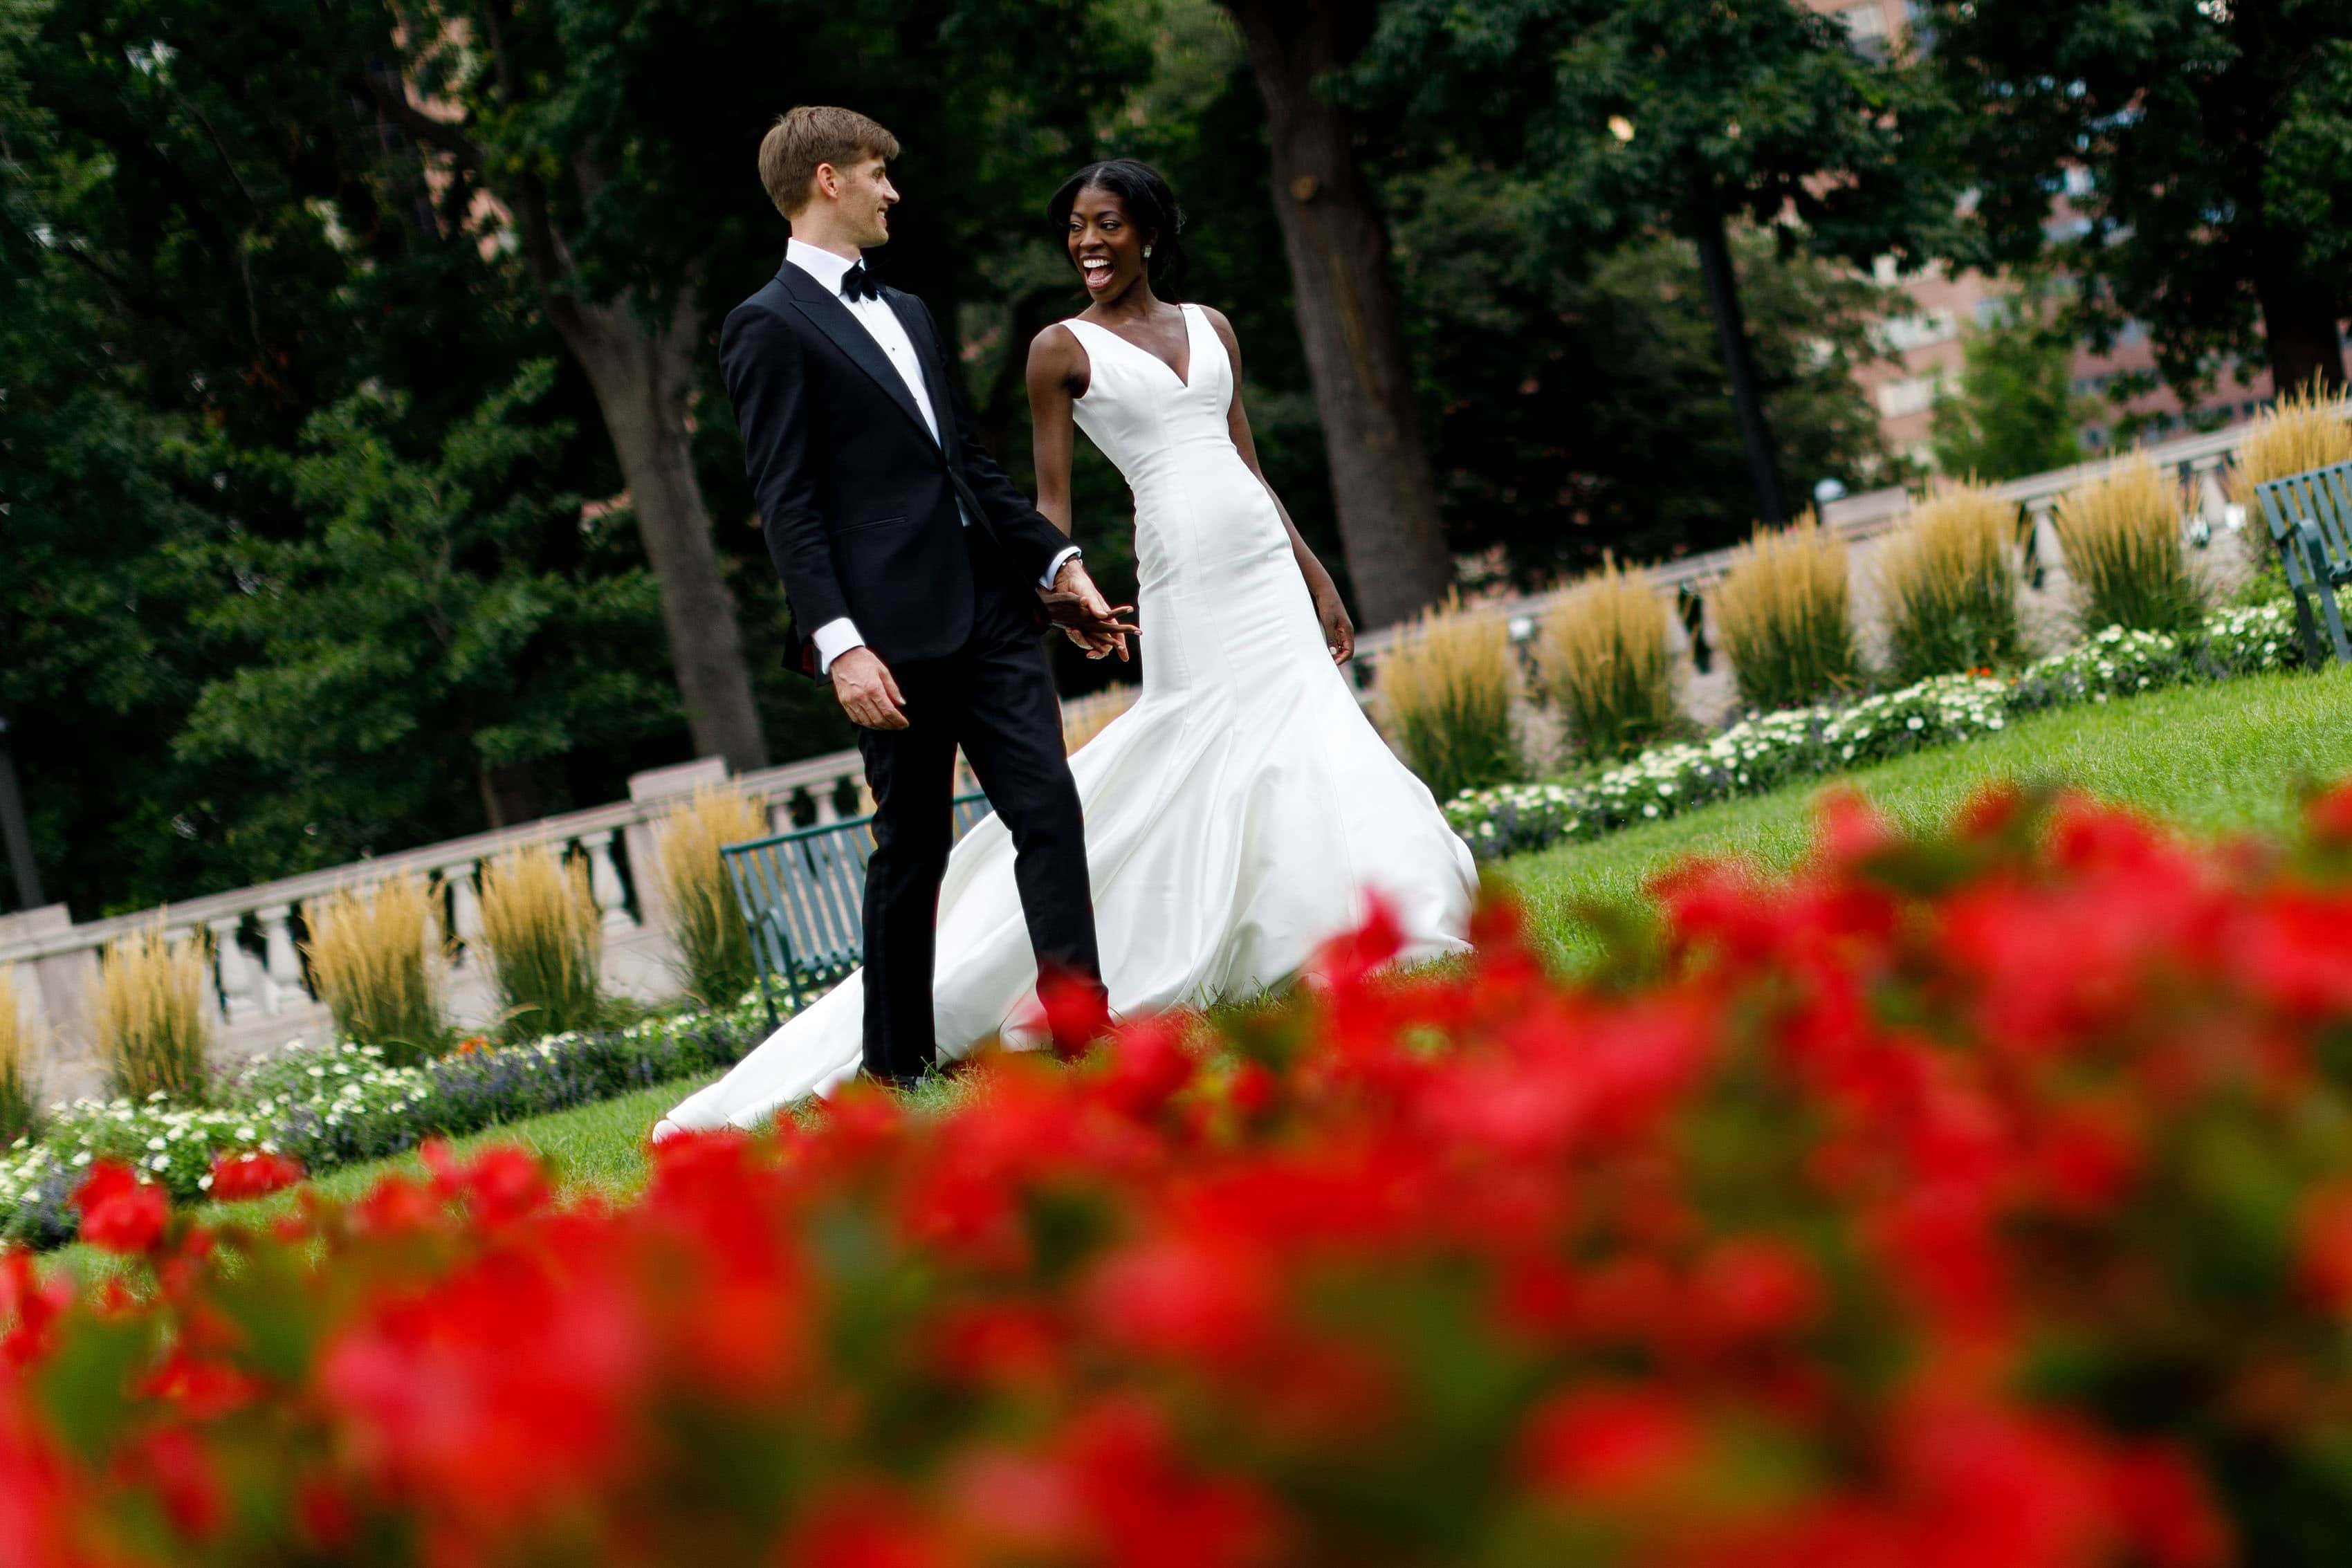 Ewo and Henry walk past colorful flowers in Denver's Civic Center Park on their wedding day